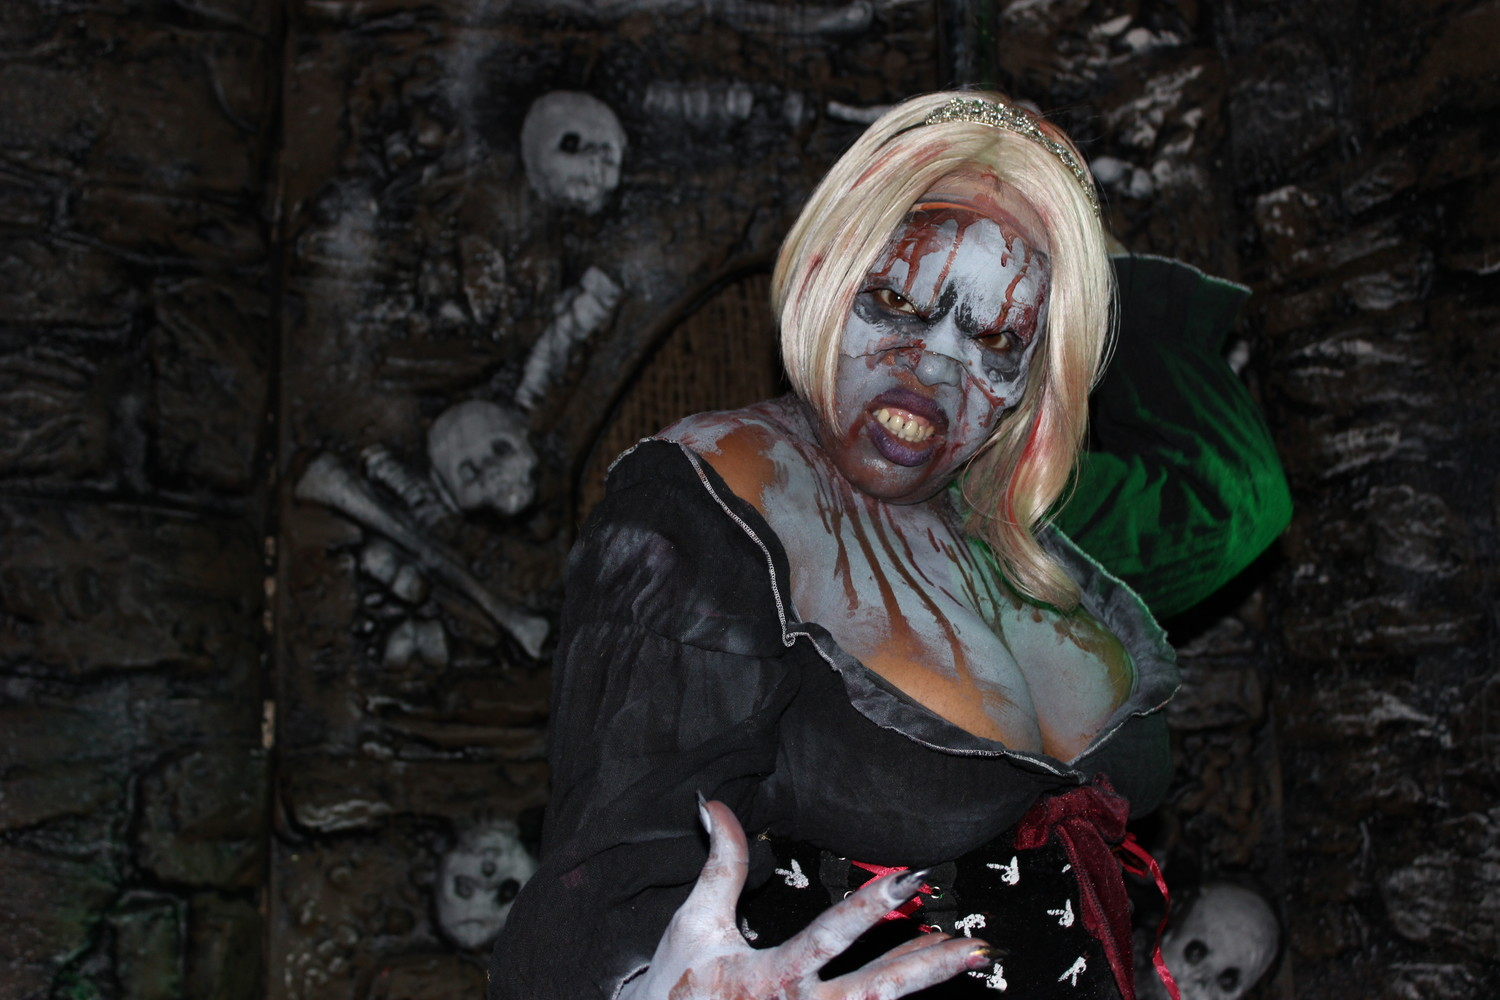 Throughout Blood Manor's Crypts of the Coliseum, undead monsters shock and taunt guests walking through the labyrinthine maze in the basement of Nassau Coliseum.